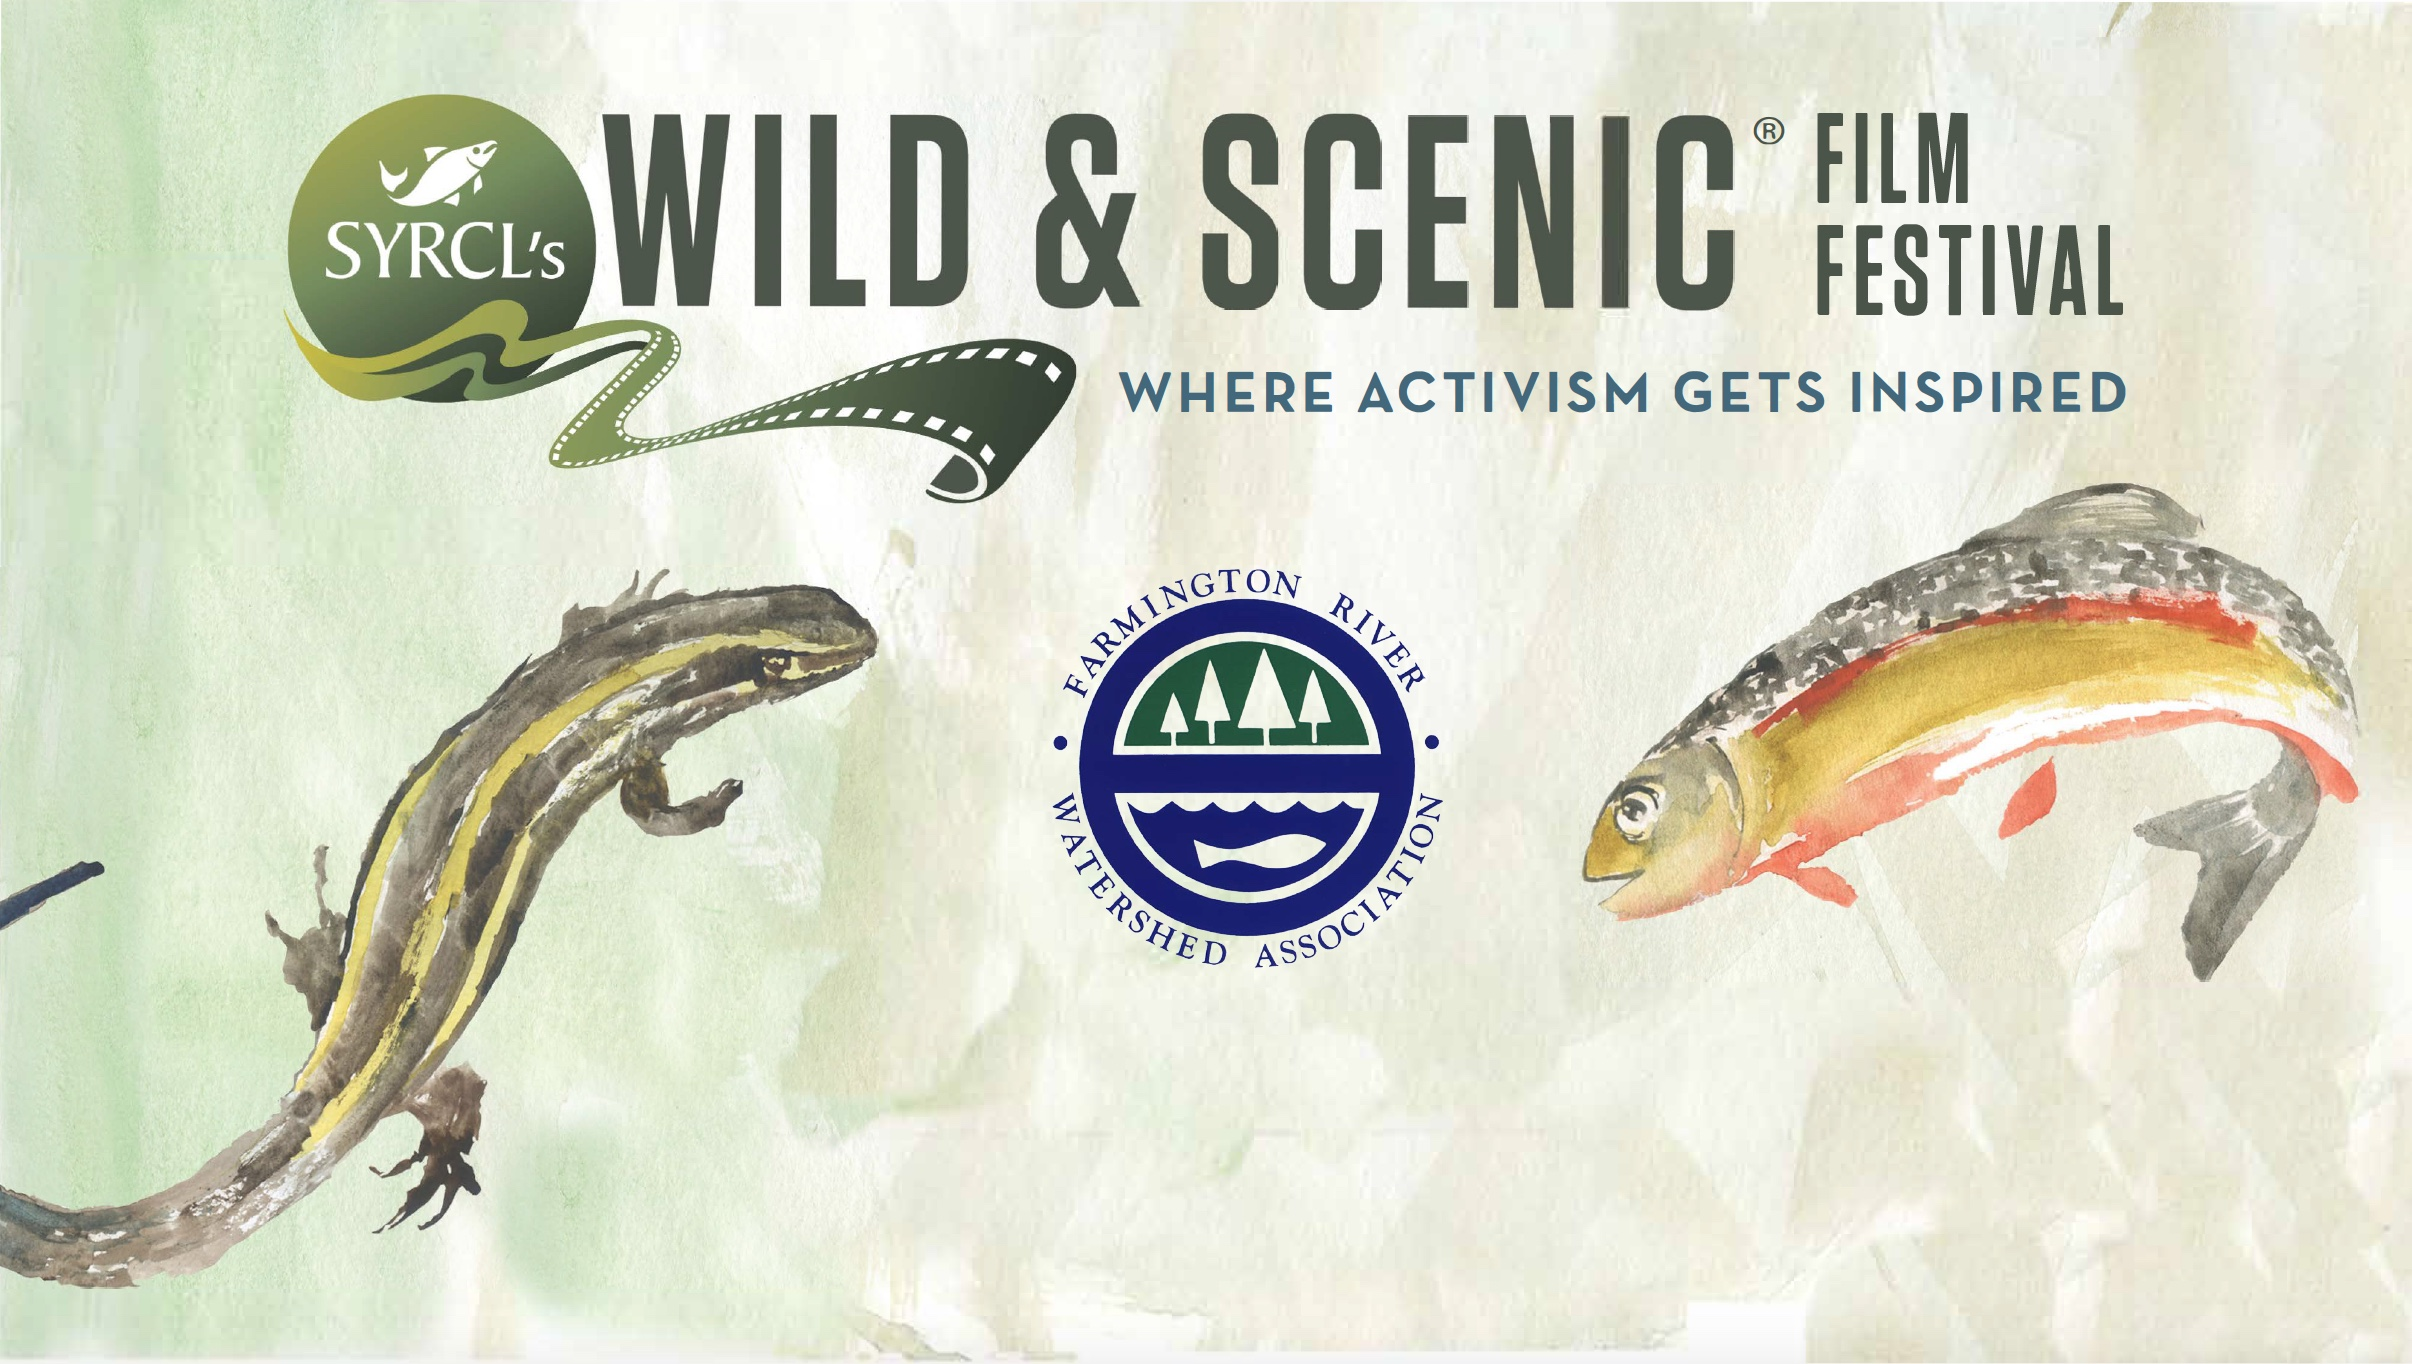 Wild & Scenic Film Festival On Tour from Simsbury